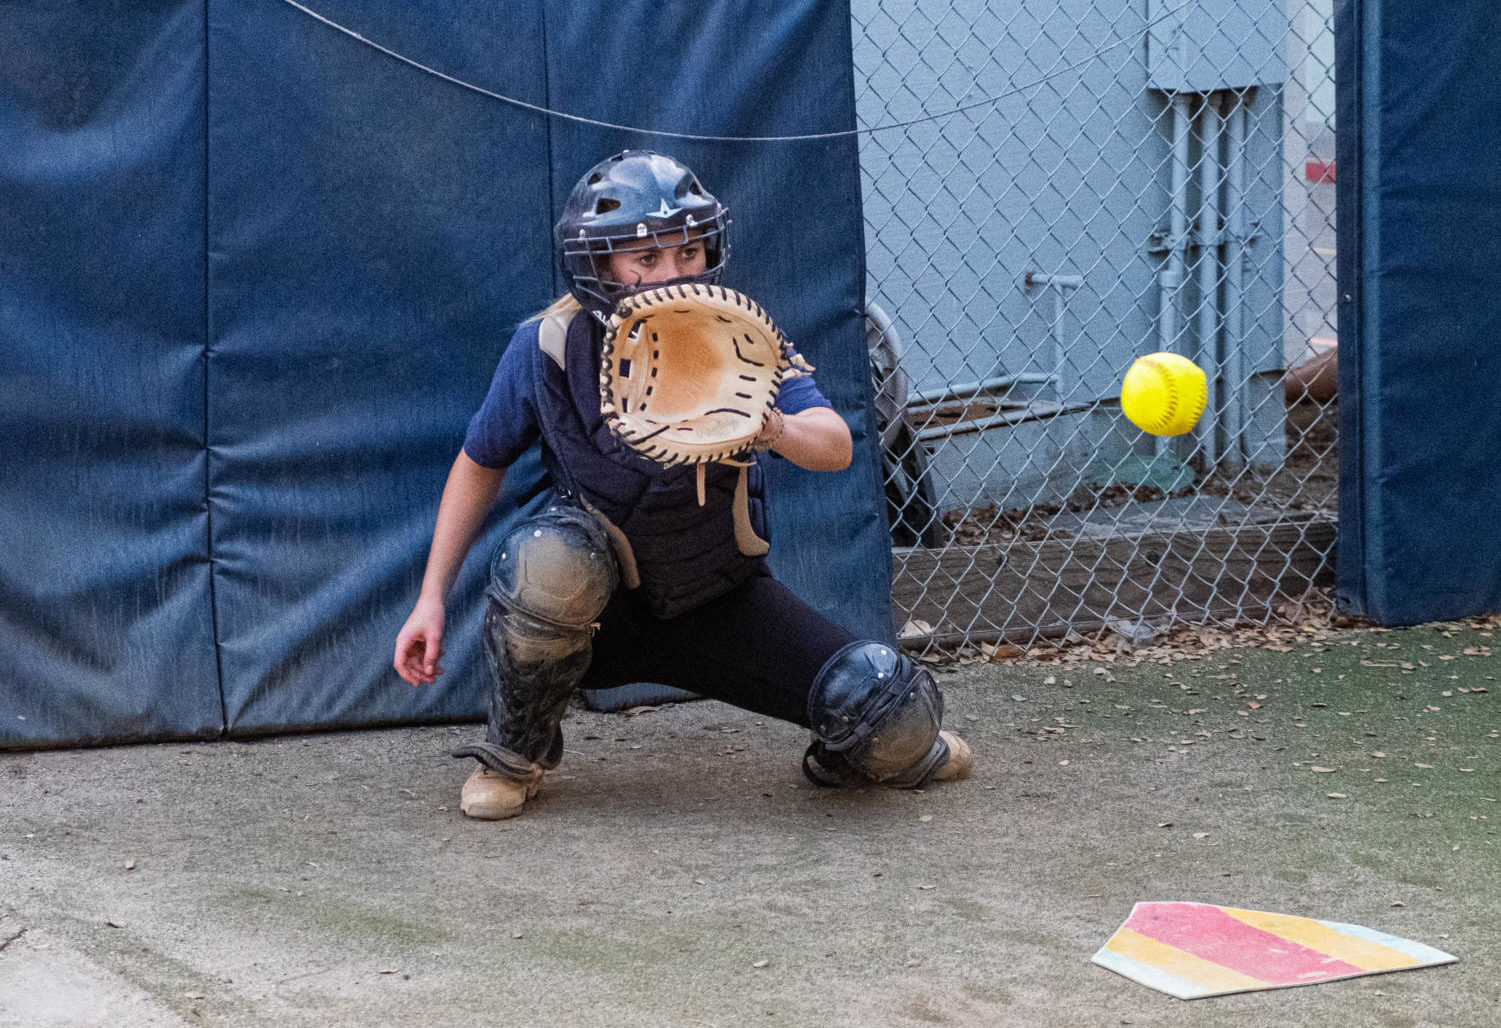 Dana Knoble, a junior, catches a ball during pitching practice.